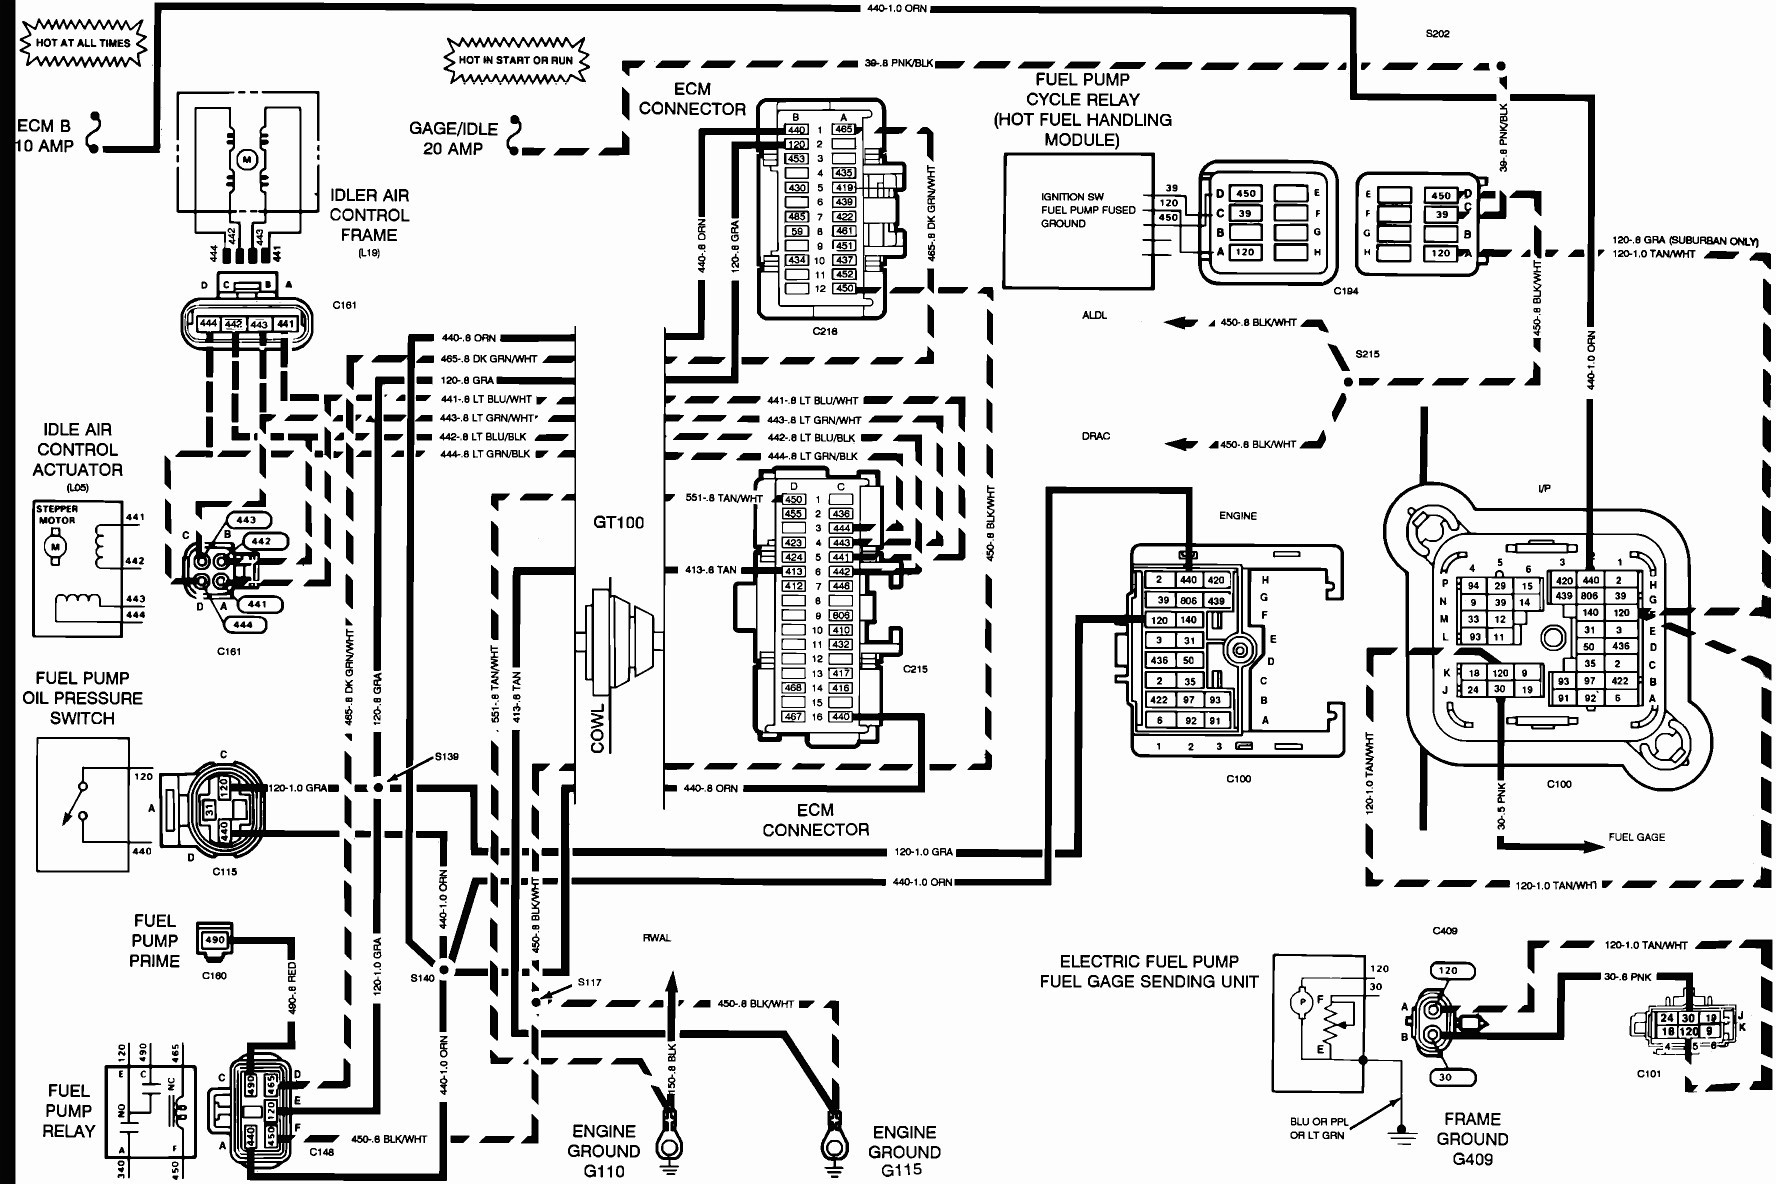 Freightliner Chassis Wiring Diagram My Wiring Diagram